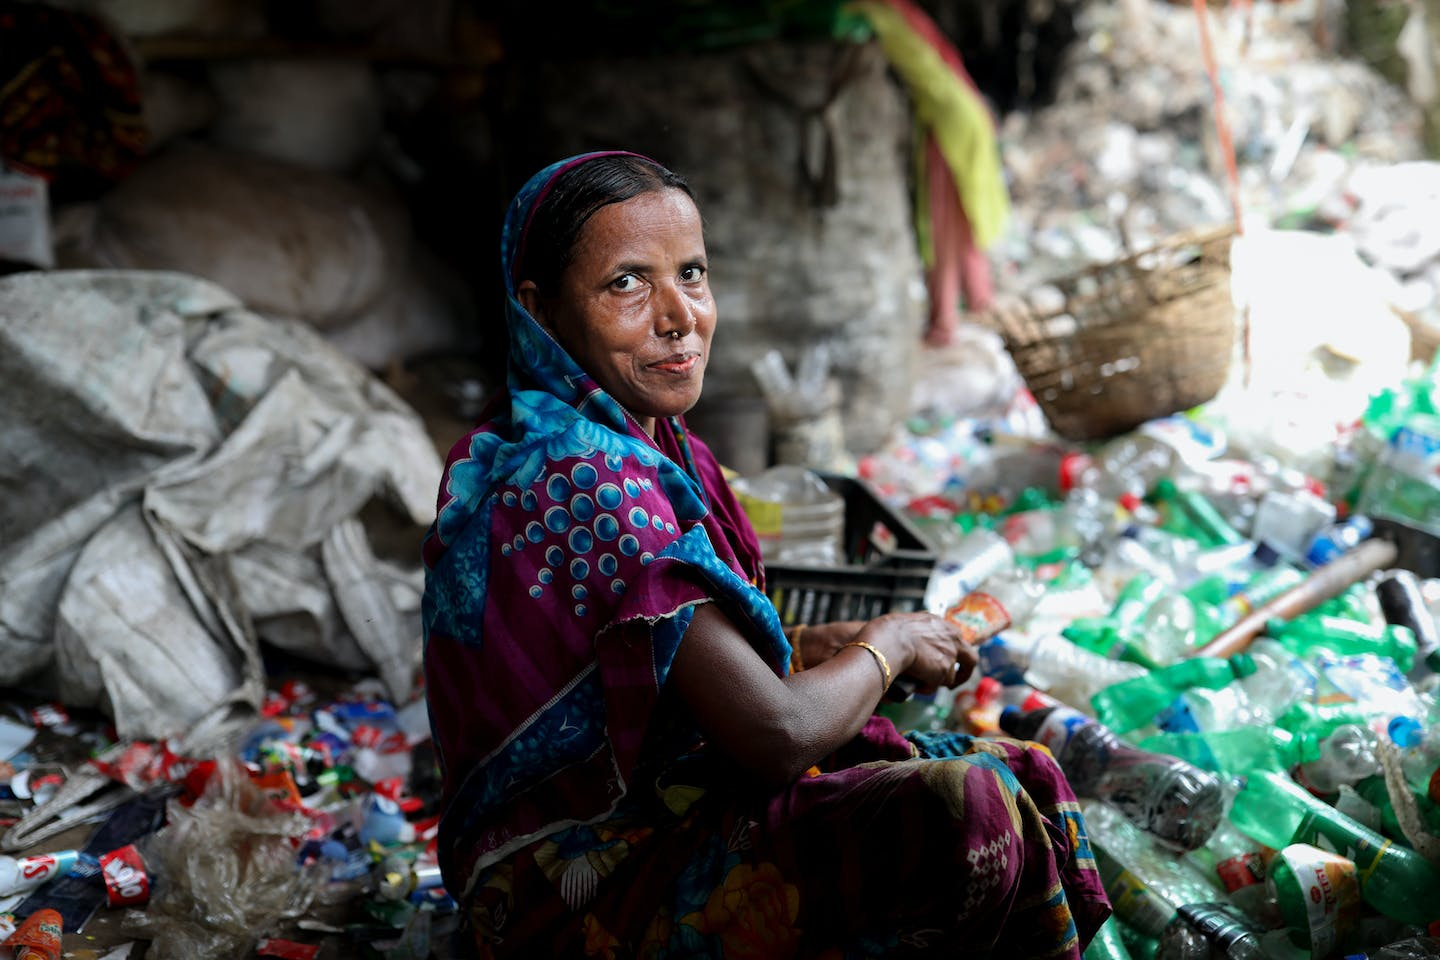 Plastic pollution disproportionately hitting marginalized groups, UN environment report finds